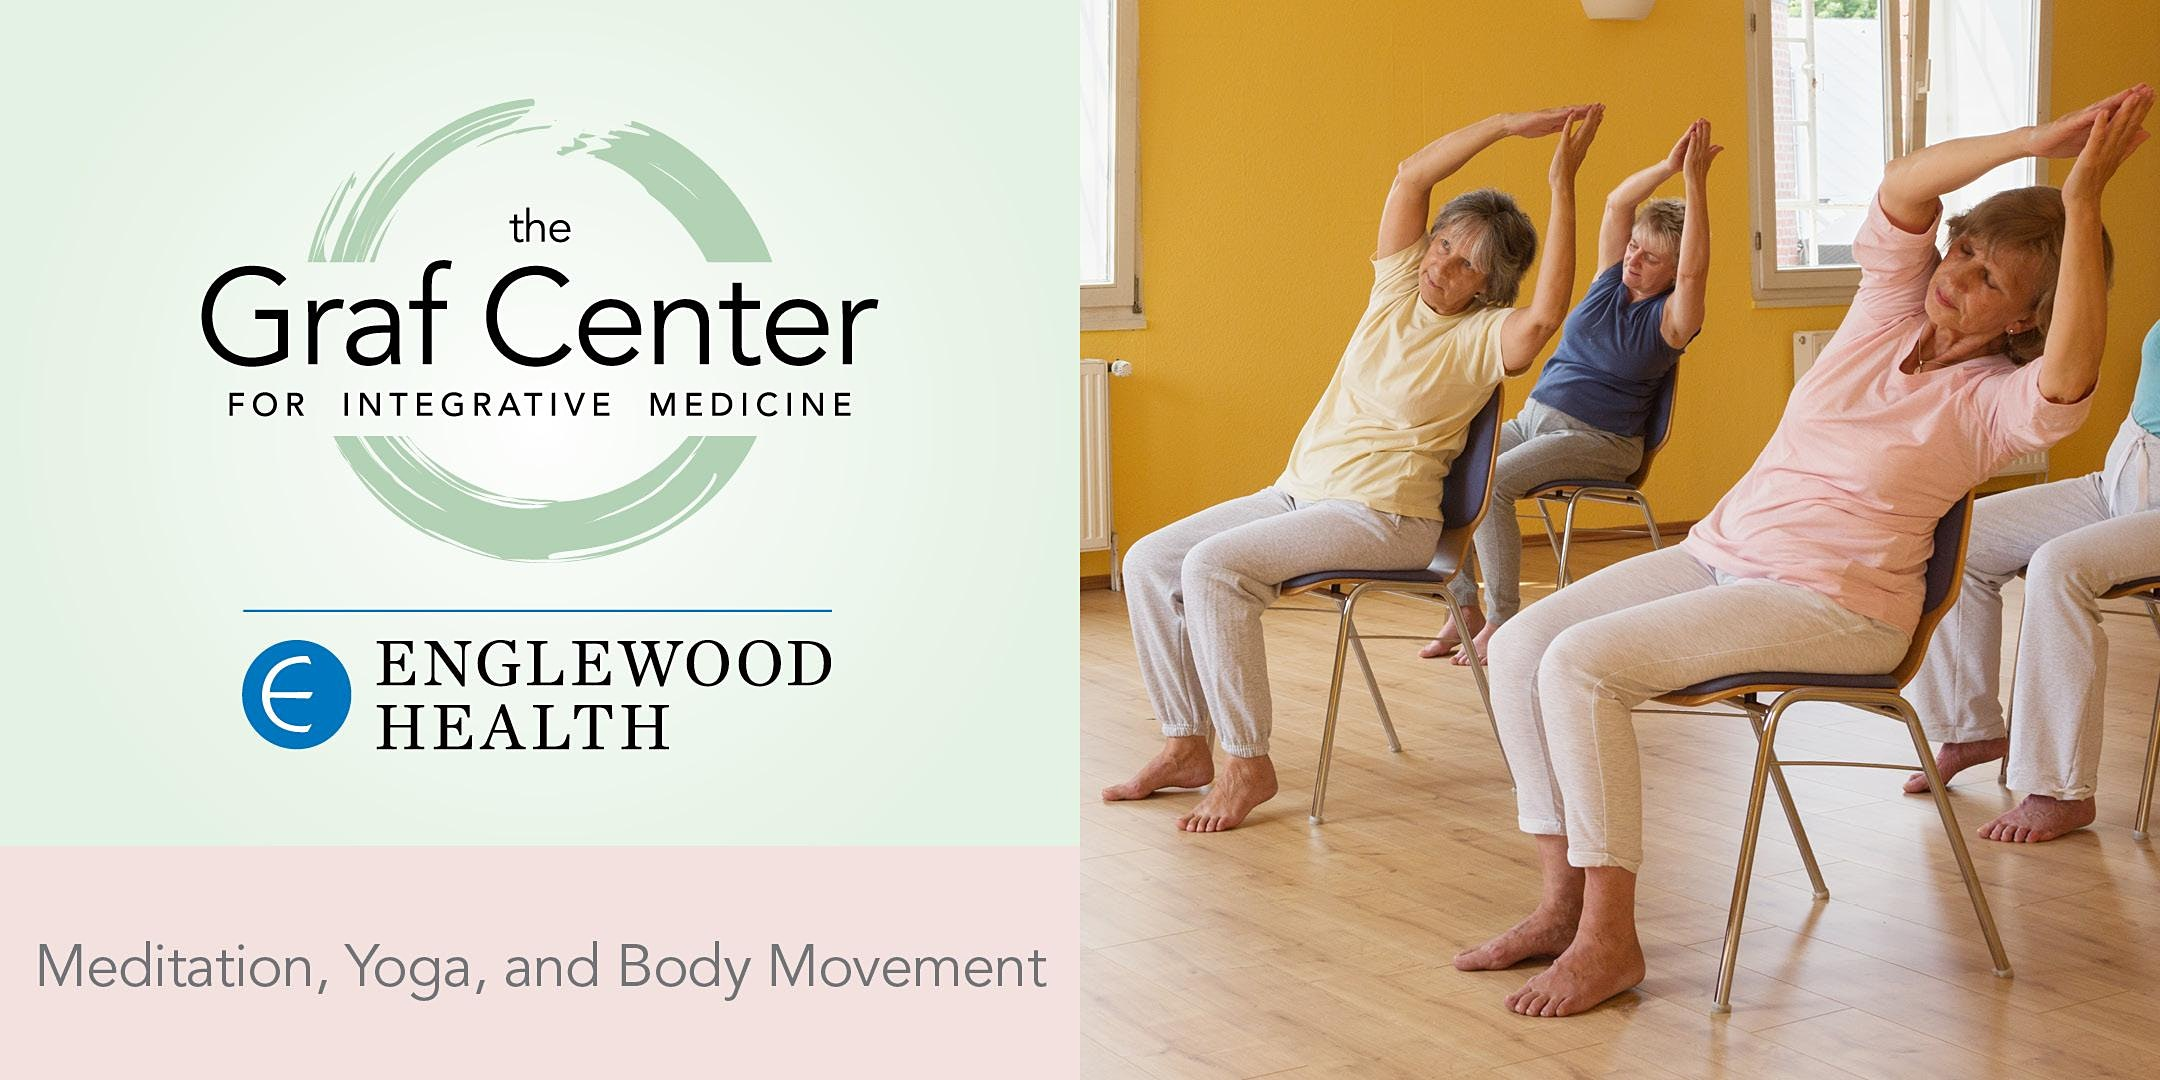 More info: Gentle Chair Yoga for Cardiovascular and Pulmonary Rehabilitation